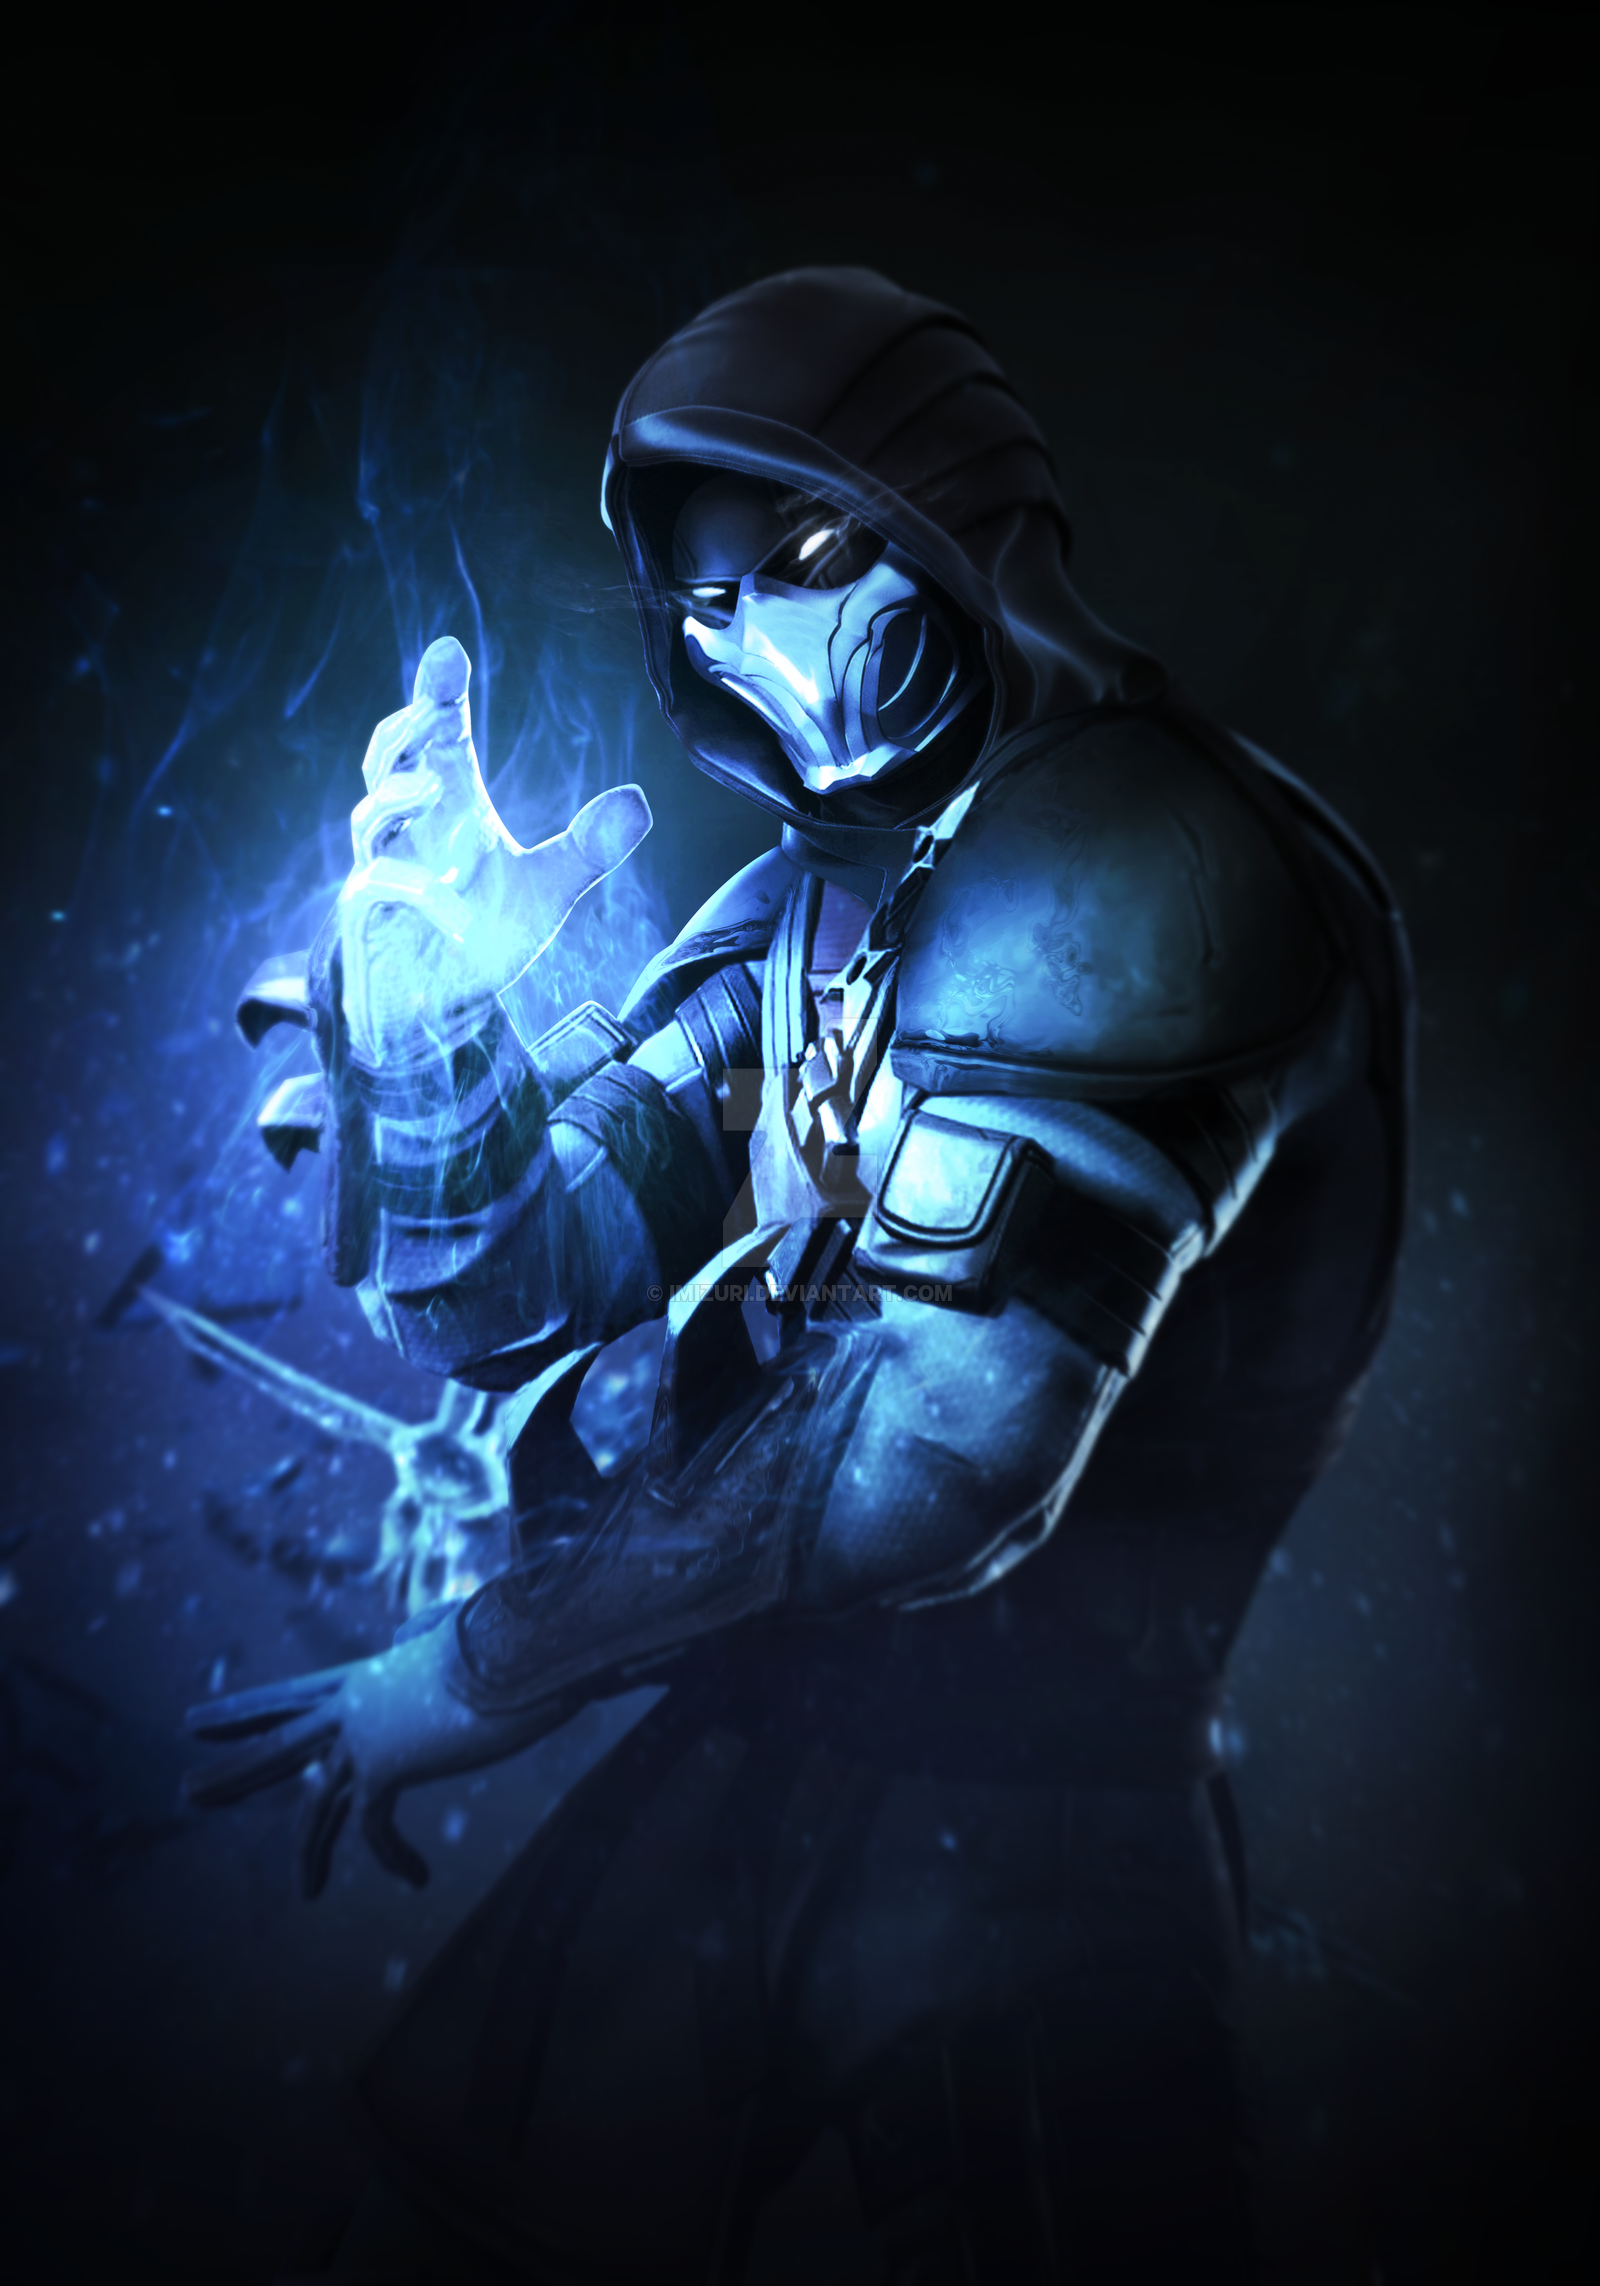 Mortal Kombat X Fortnite Subzero By Mizuriofficial On Deviantart Mortal Kombat Art Sub Zero Mortal Kombat Raiden Mortal Kombat